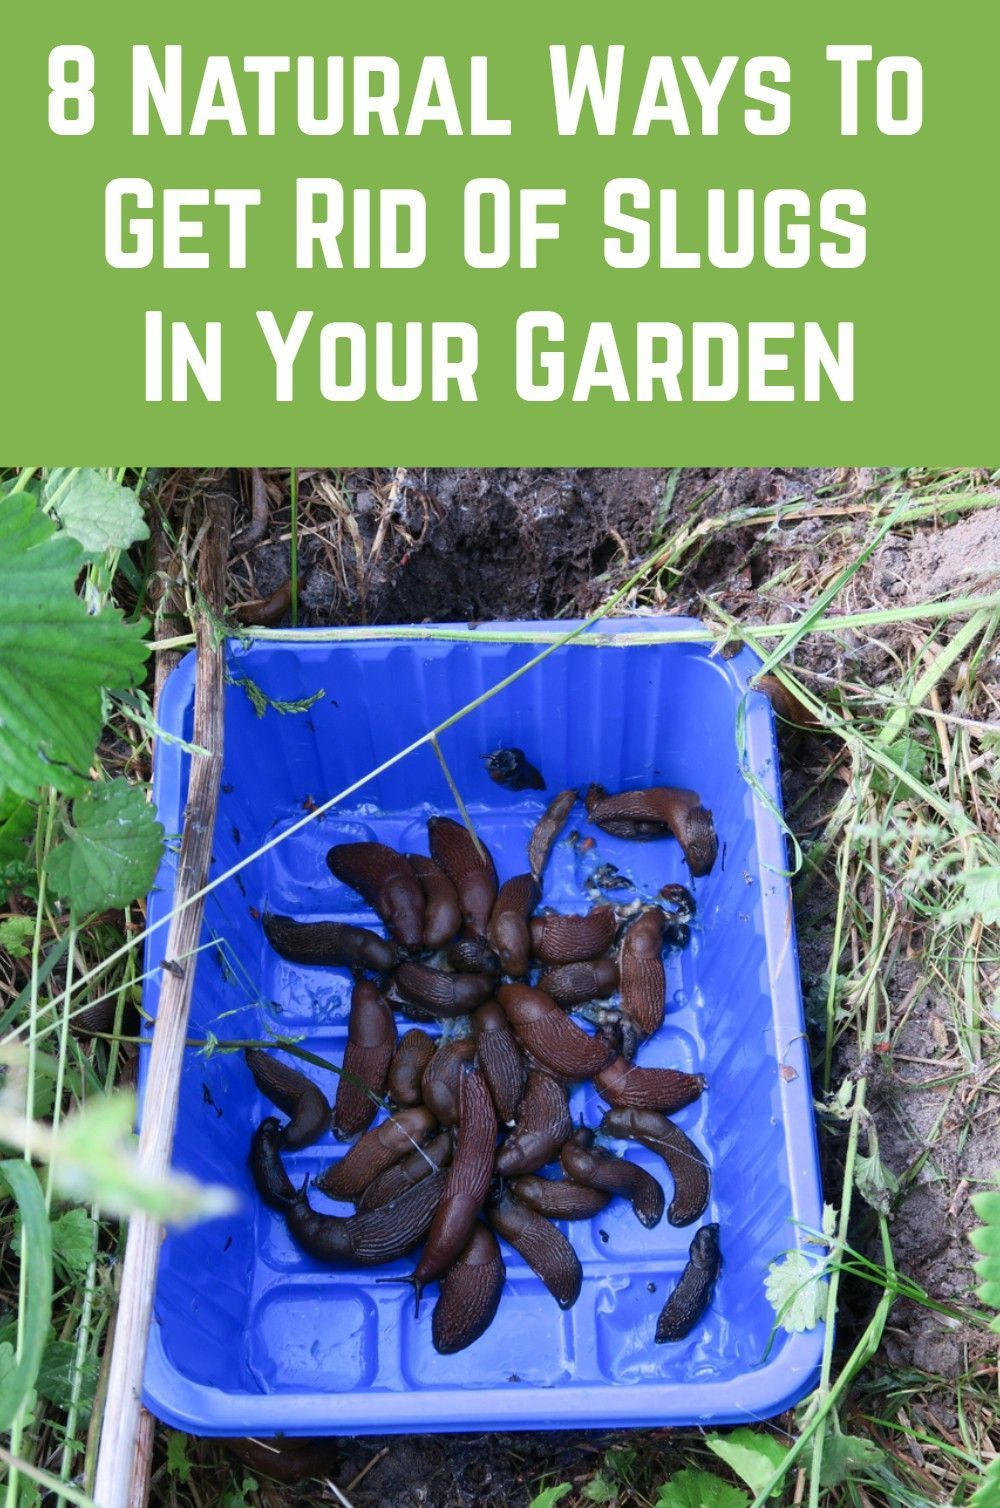 8 Natural Ways To Get Rid Of Slugs In Your Garden in 2020 ...